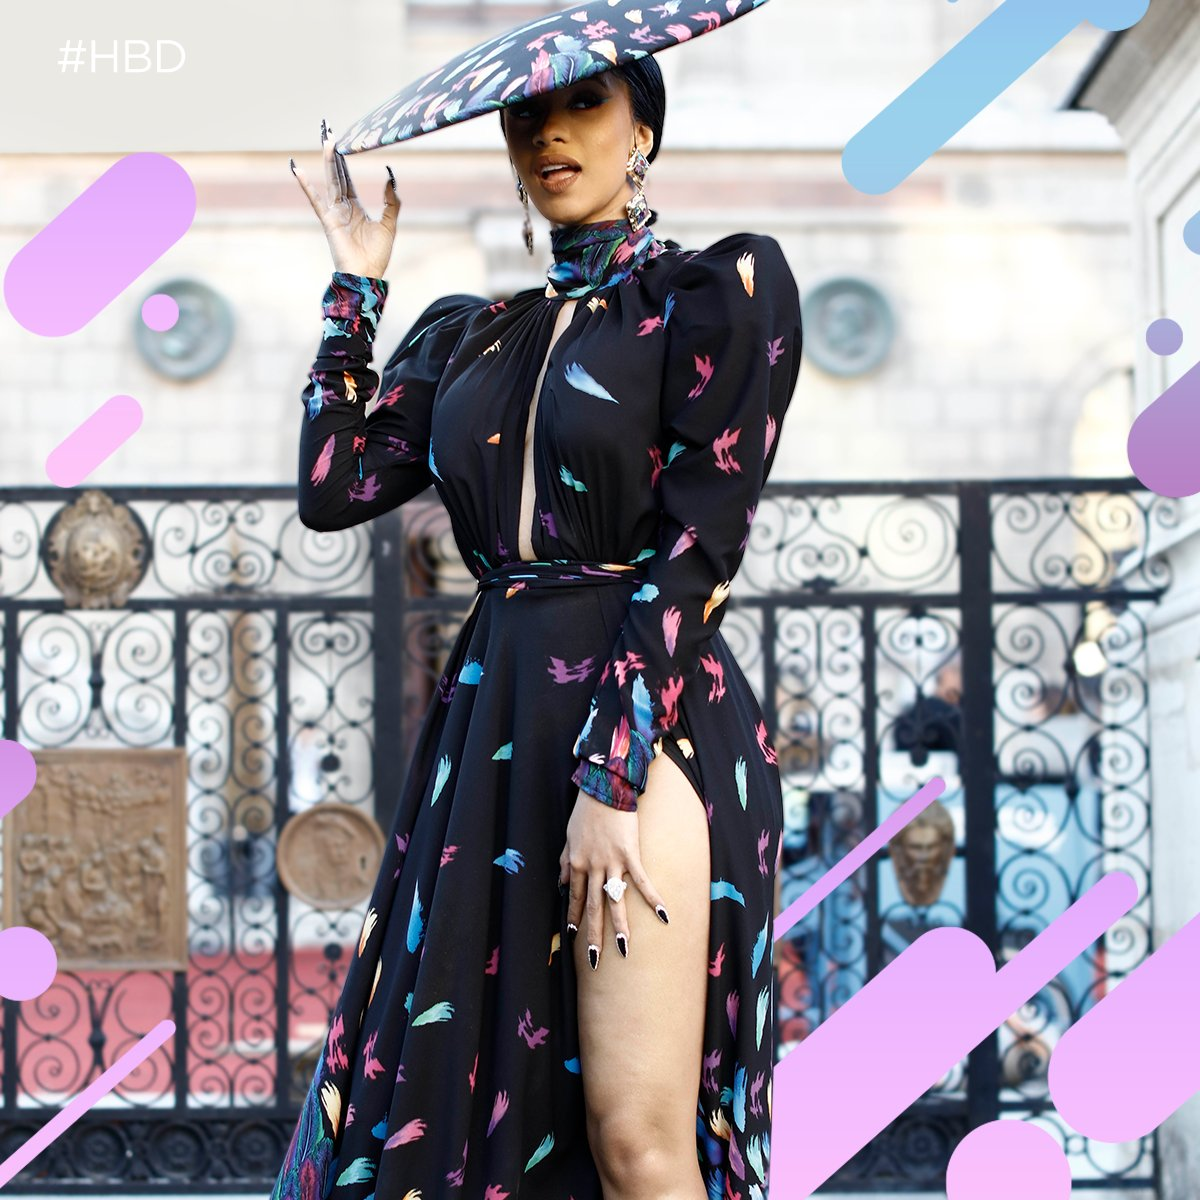 .@iamcardib has taken the world by storm over the past two years, and it's only going to get better from here. Happy 26th birthday, Bardi. 🎂